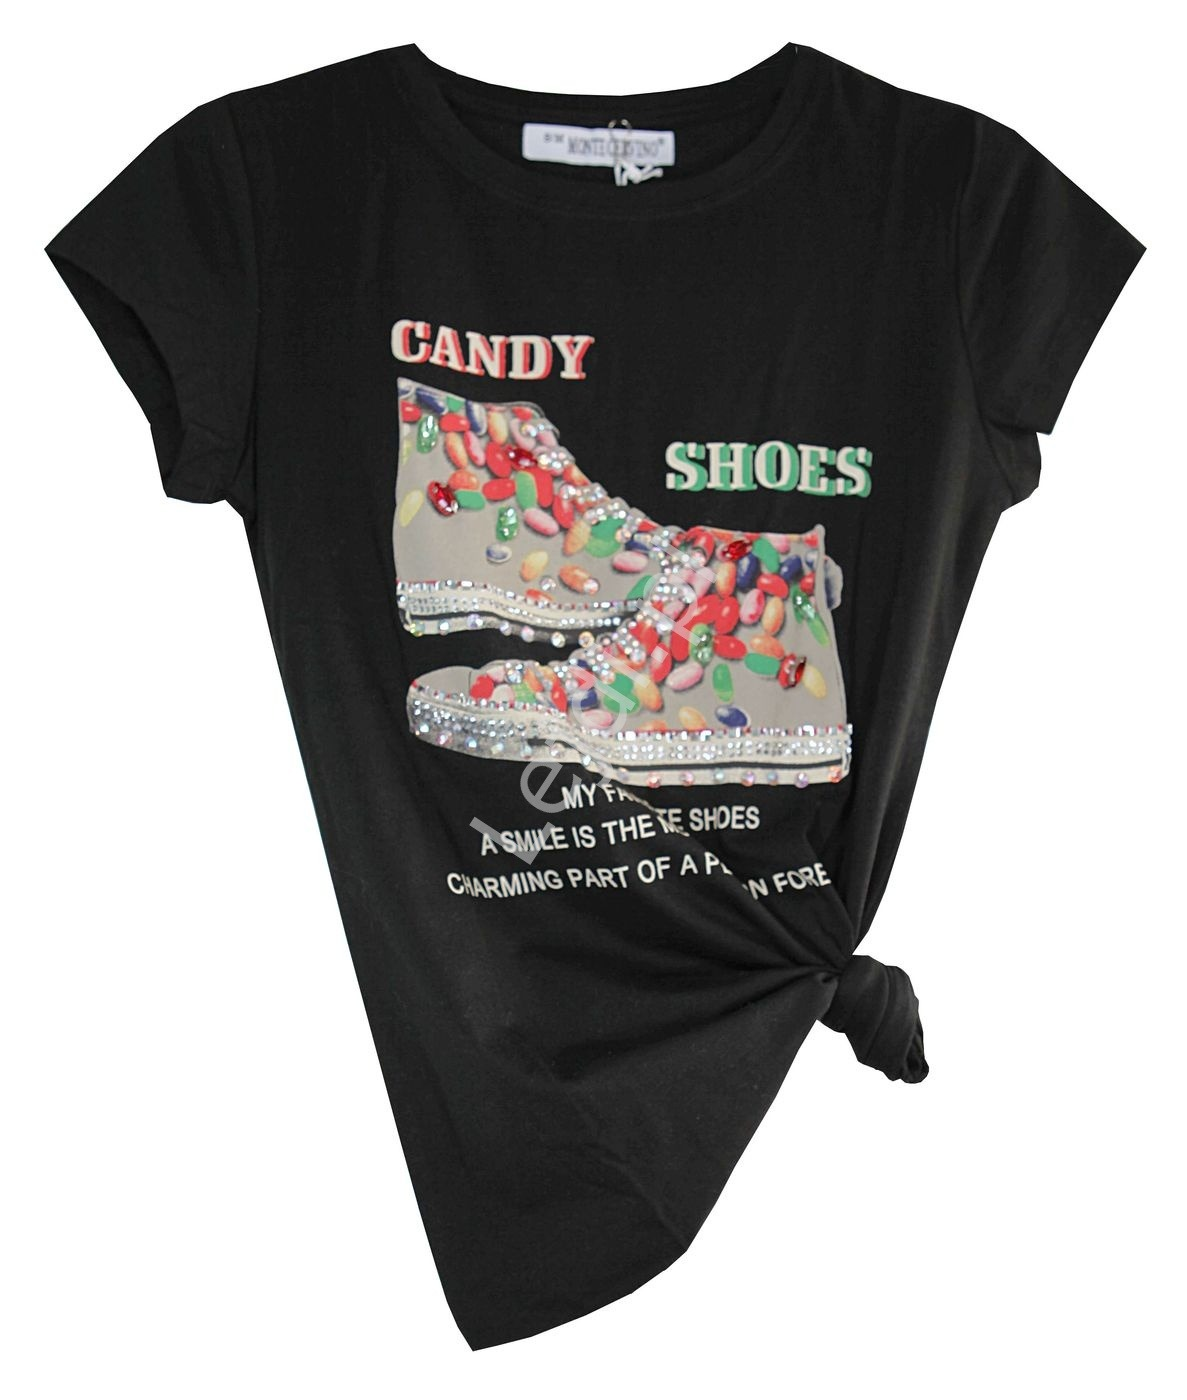 Czarny t-shirt z trampkami candy shoes